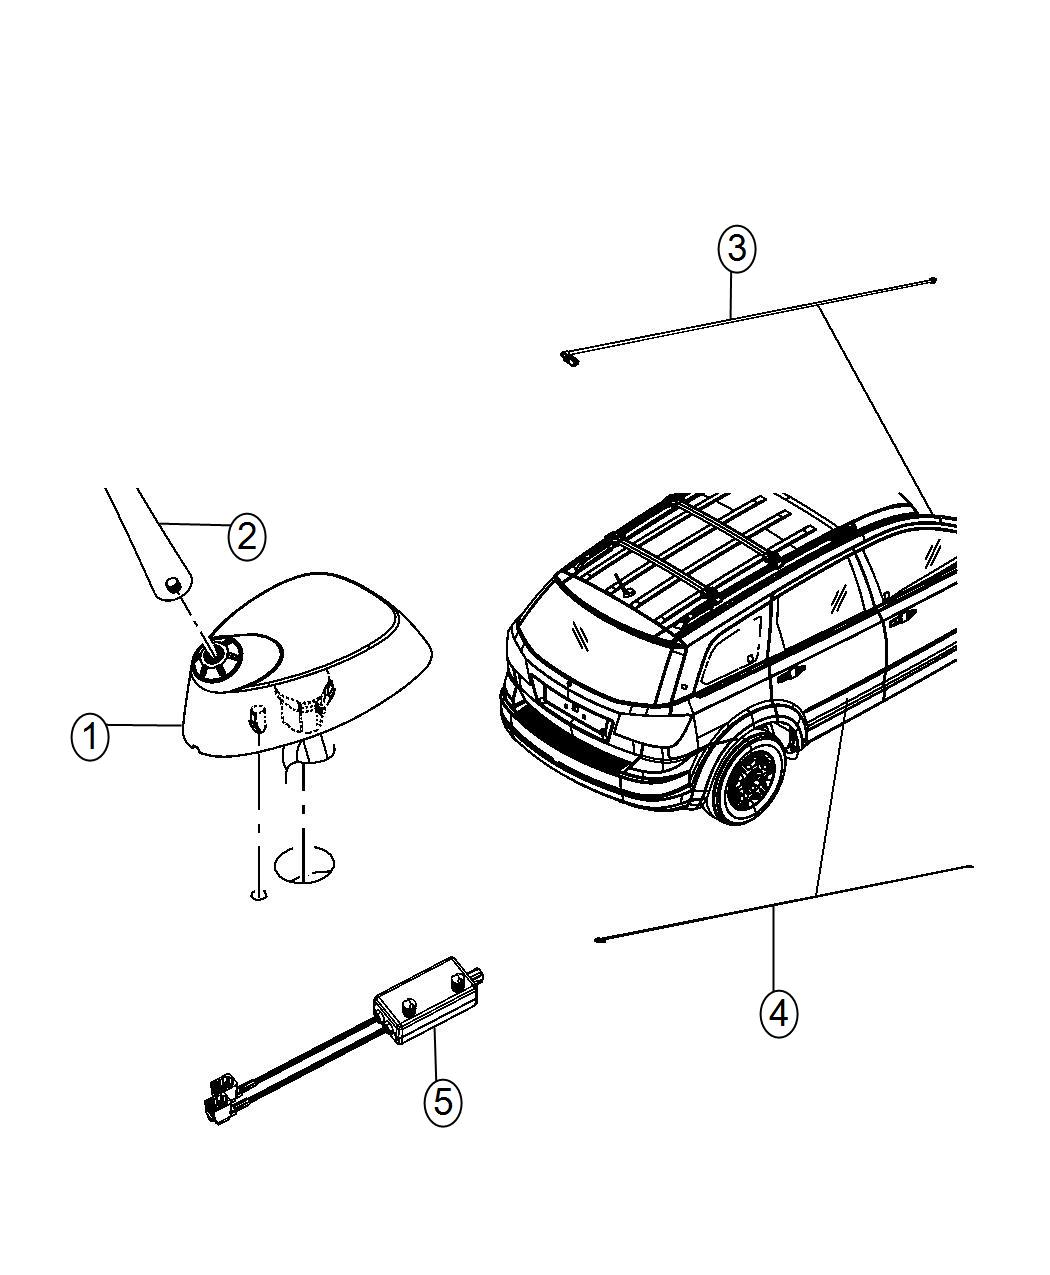 2017 Jeep Renegade Antenna. Used for: base cable and